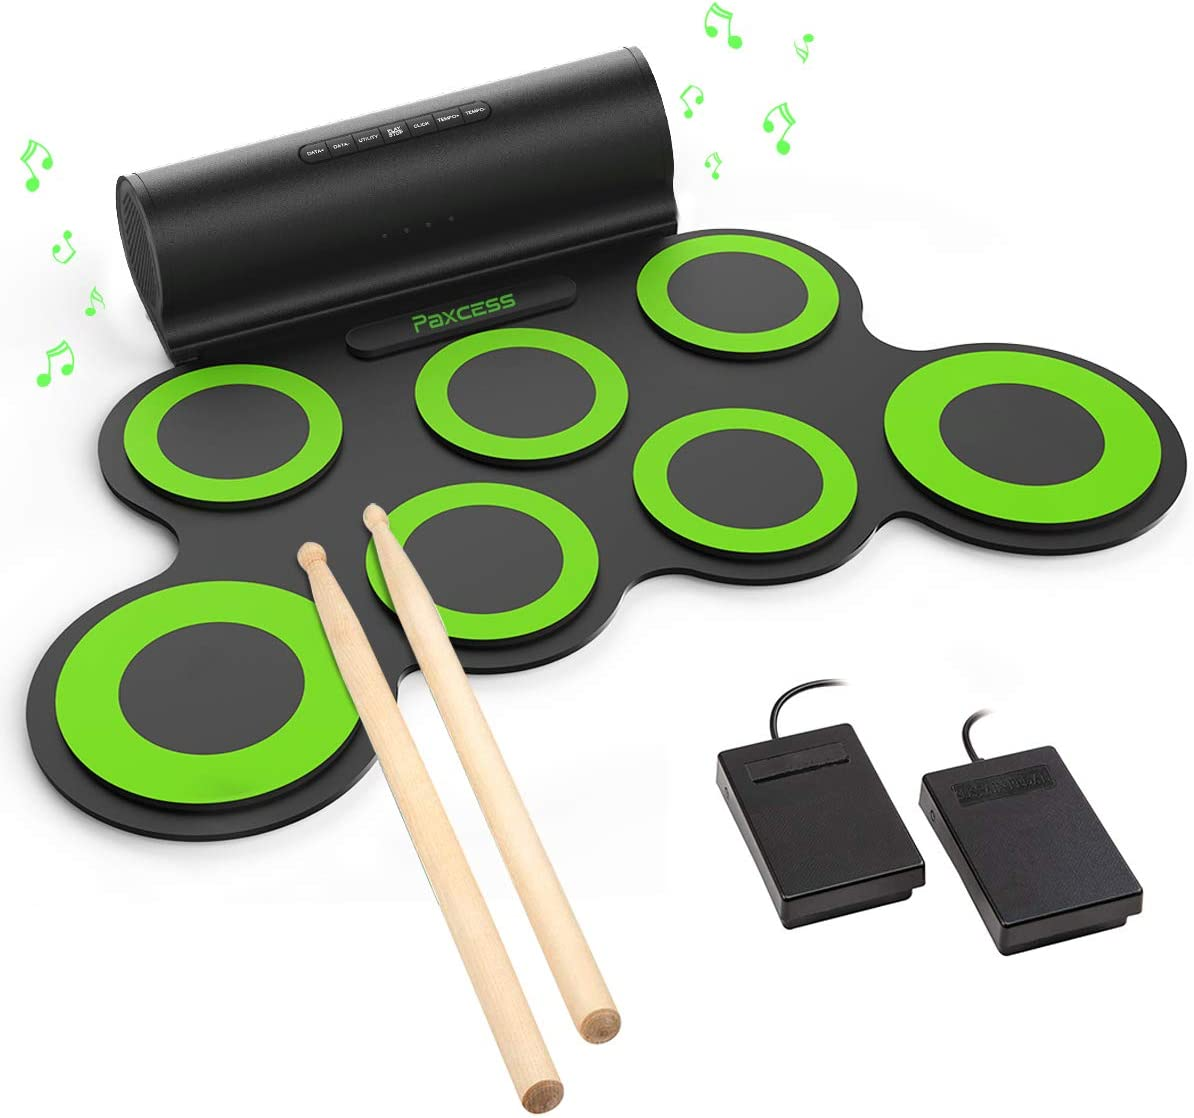 PAXCESS ELECTRONIC DRUM Kit – Best for portability